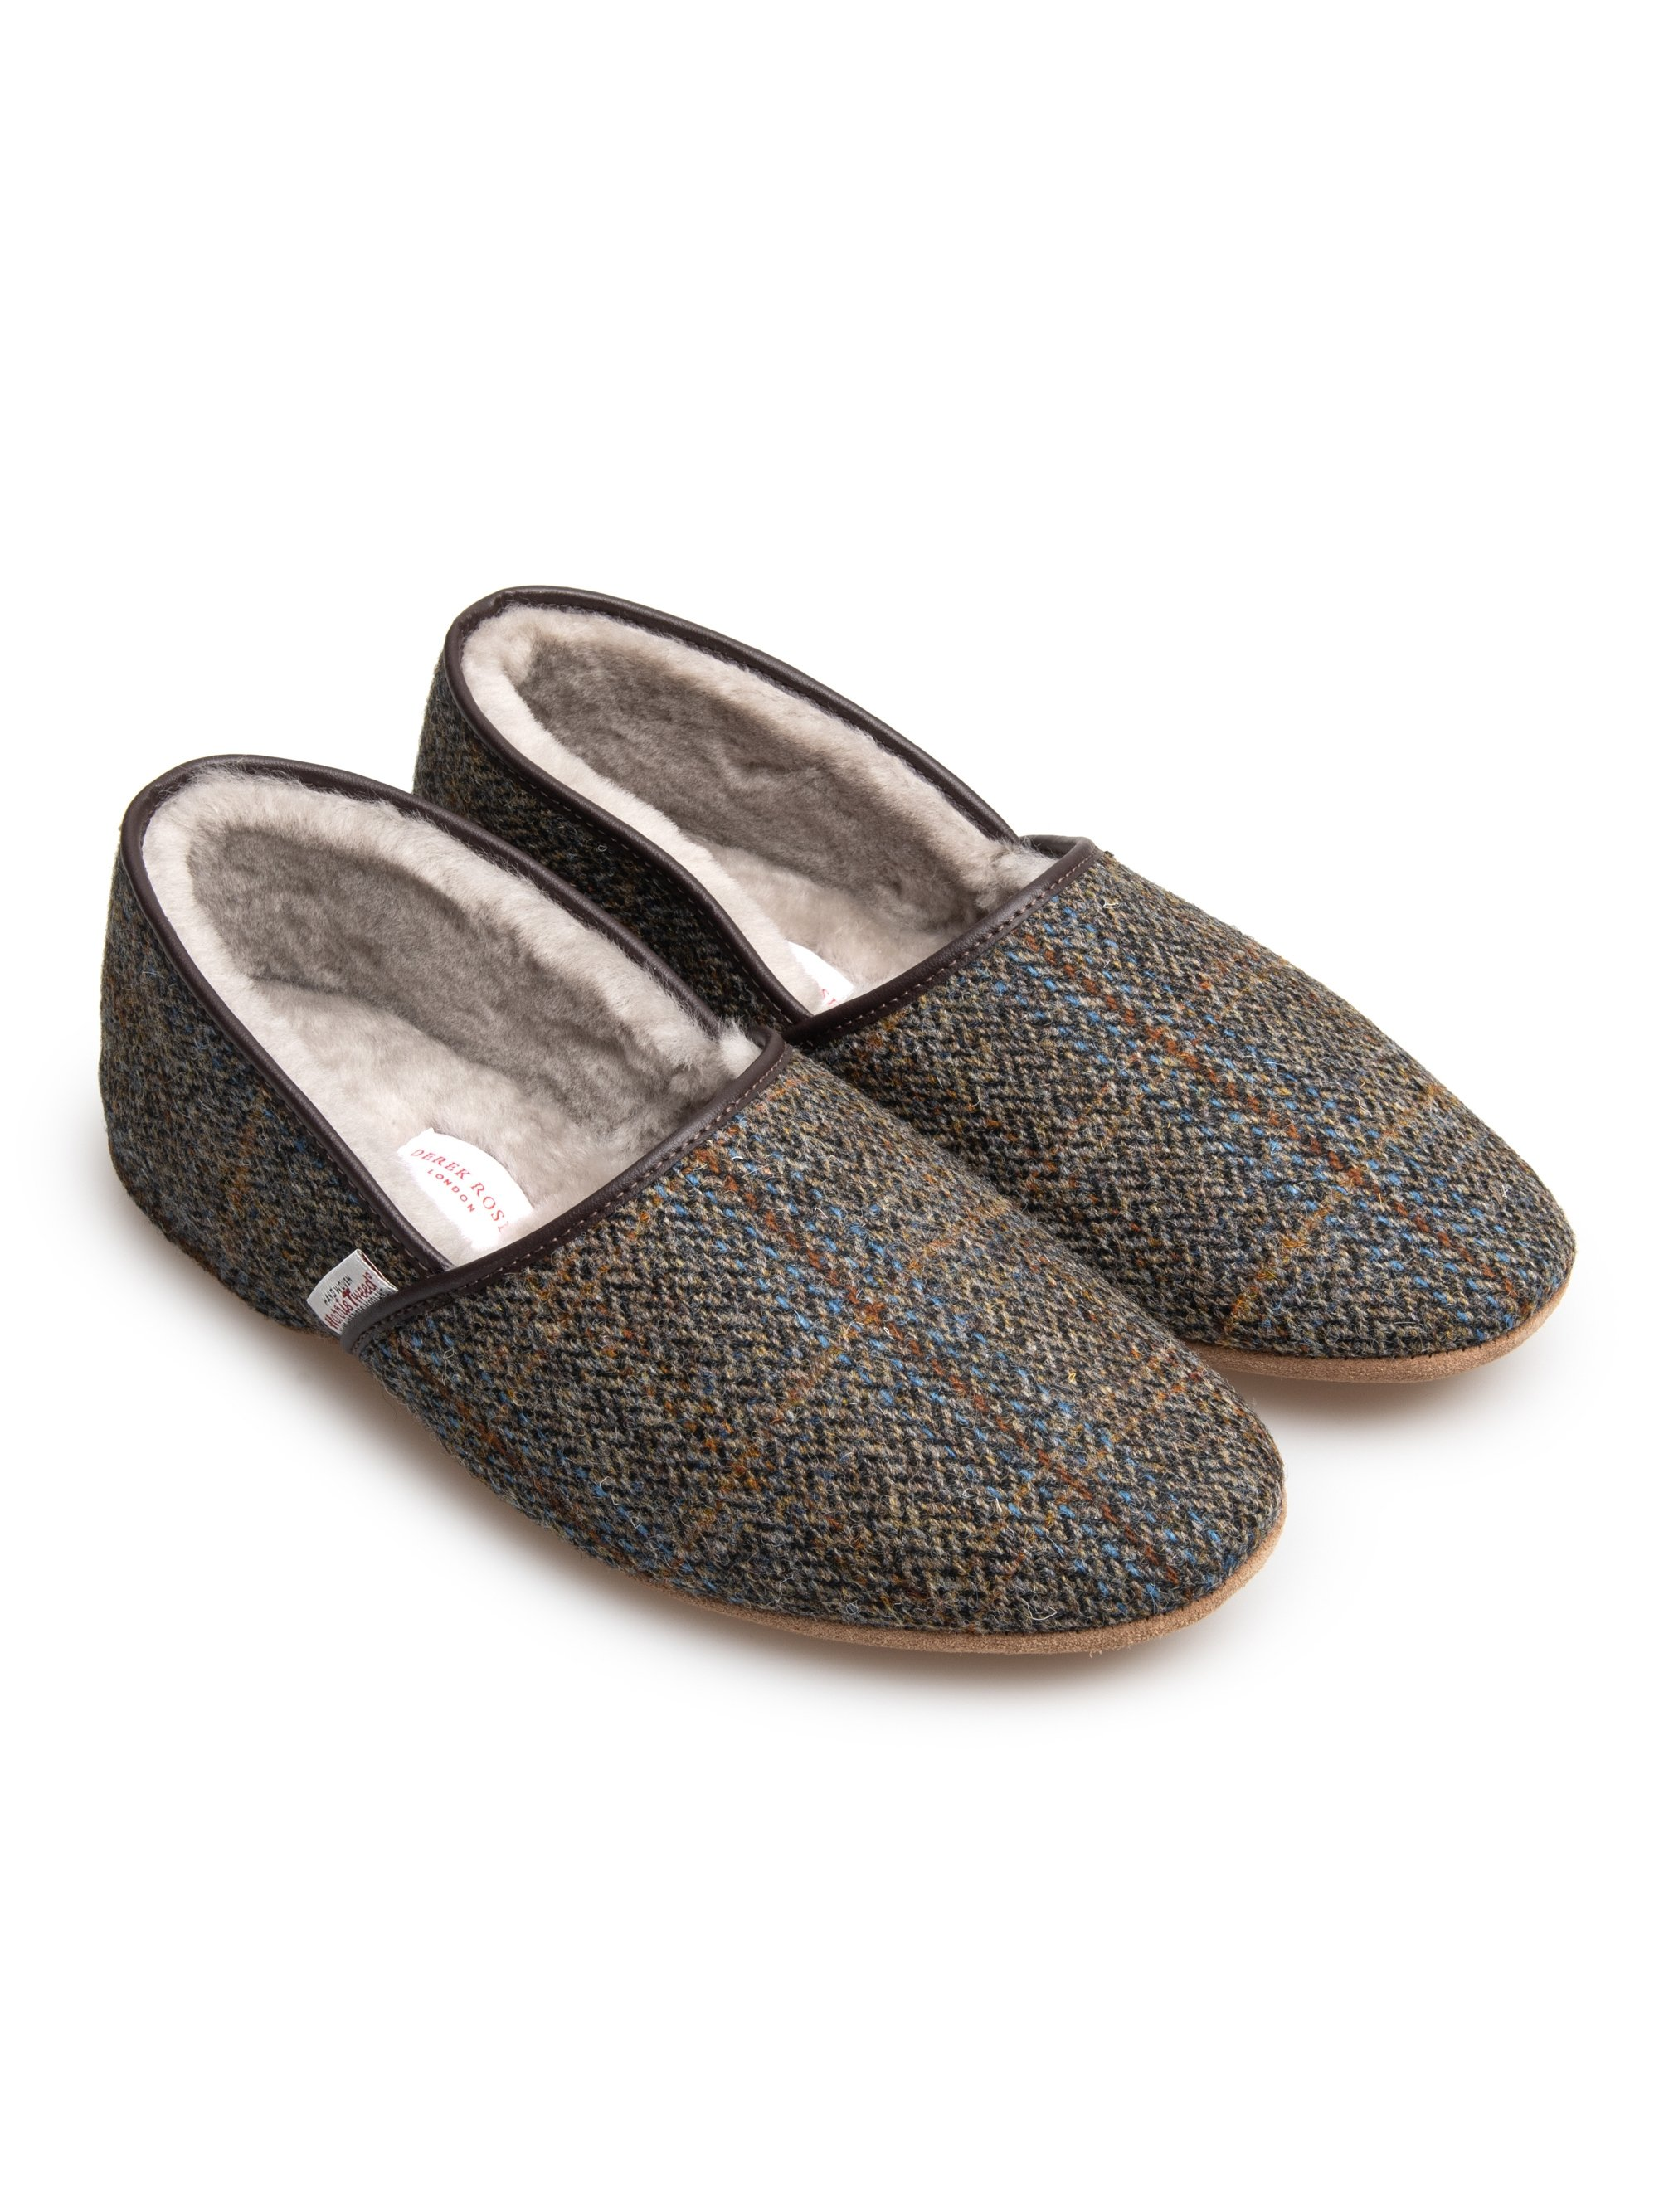 Men's Closed-Back Slipper Crawford 2 Harris Tweed Sheepskin Beige